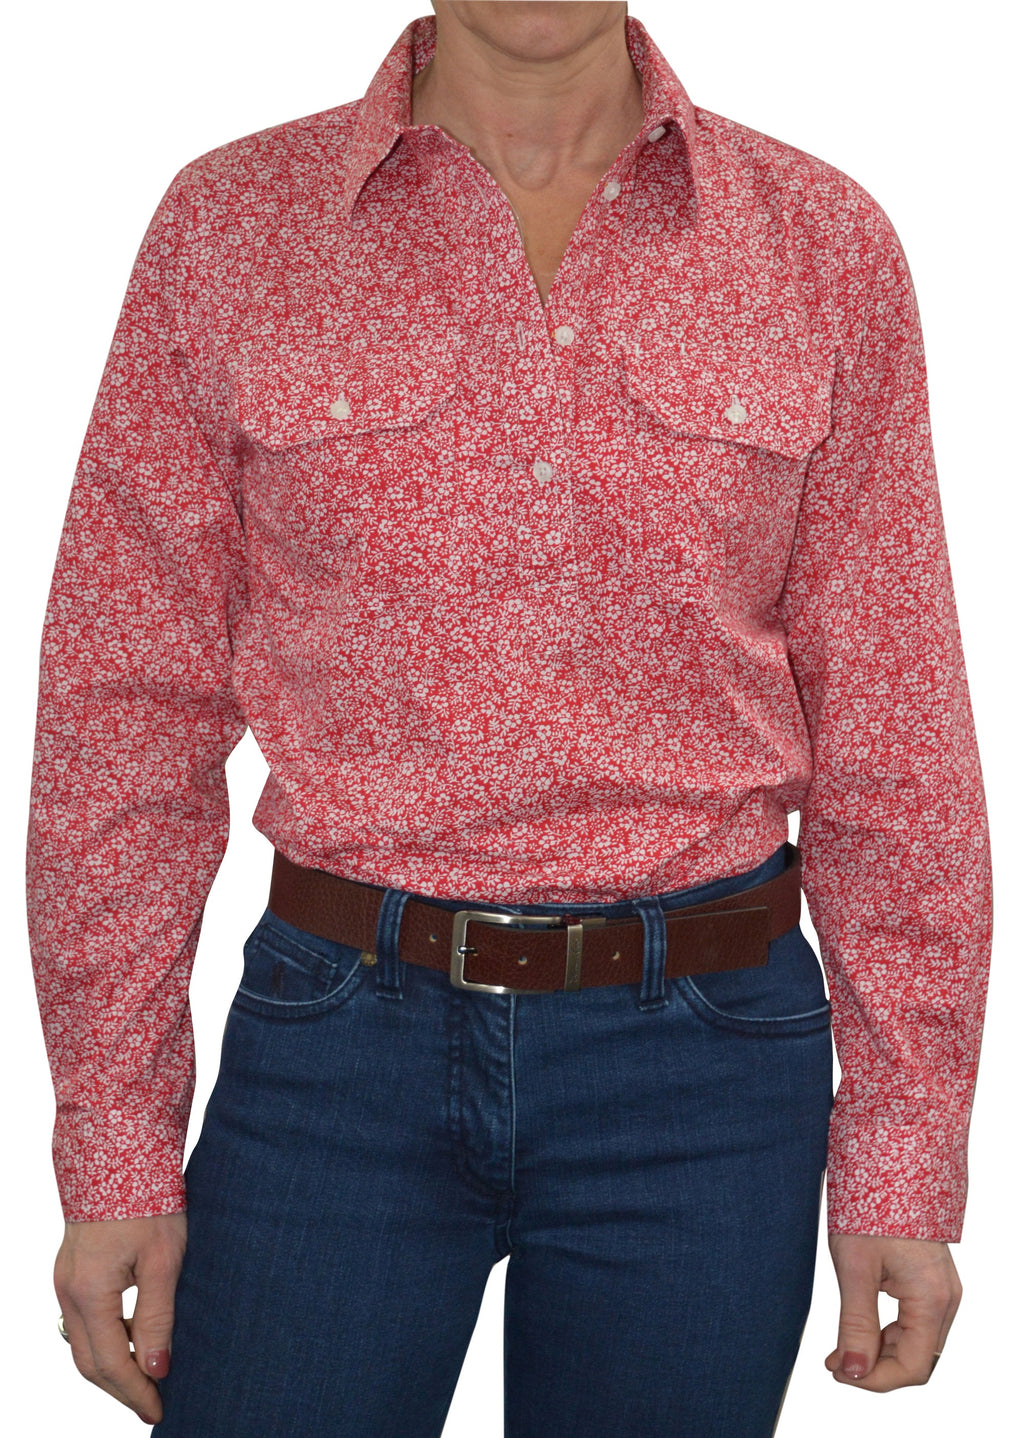 Womens Half Placket Red 2 pckt Print L/S shirt